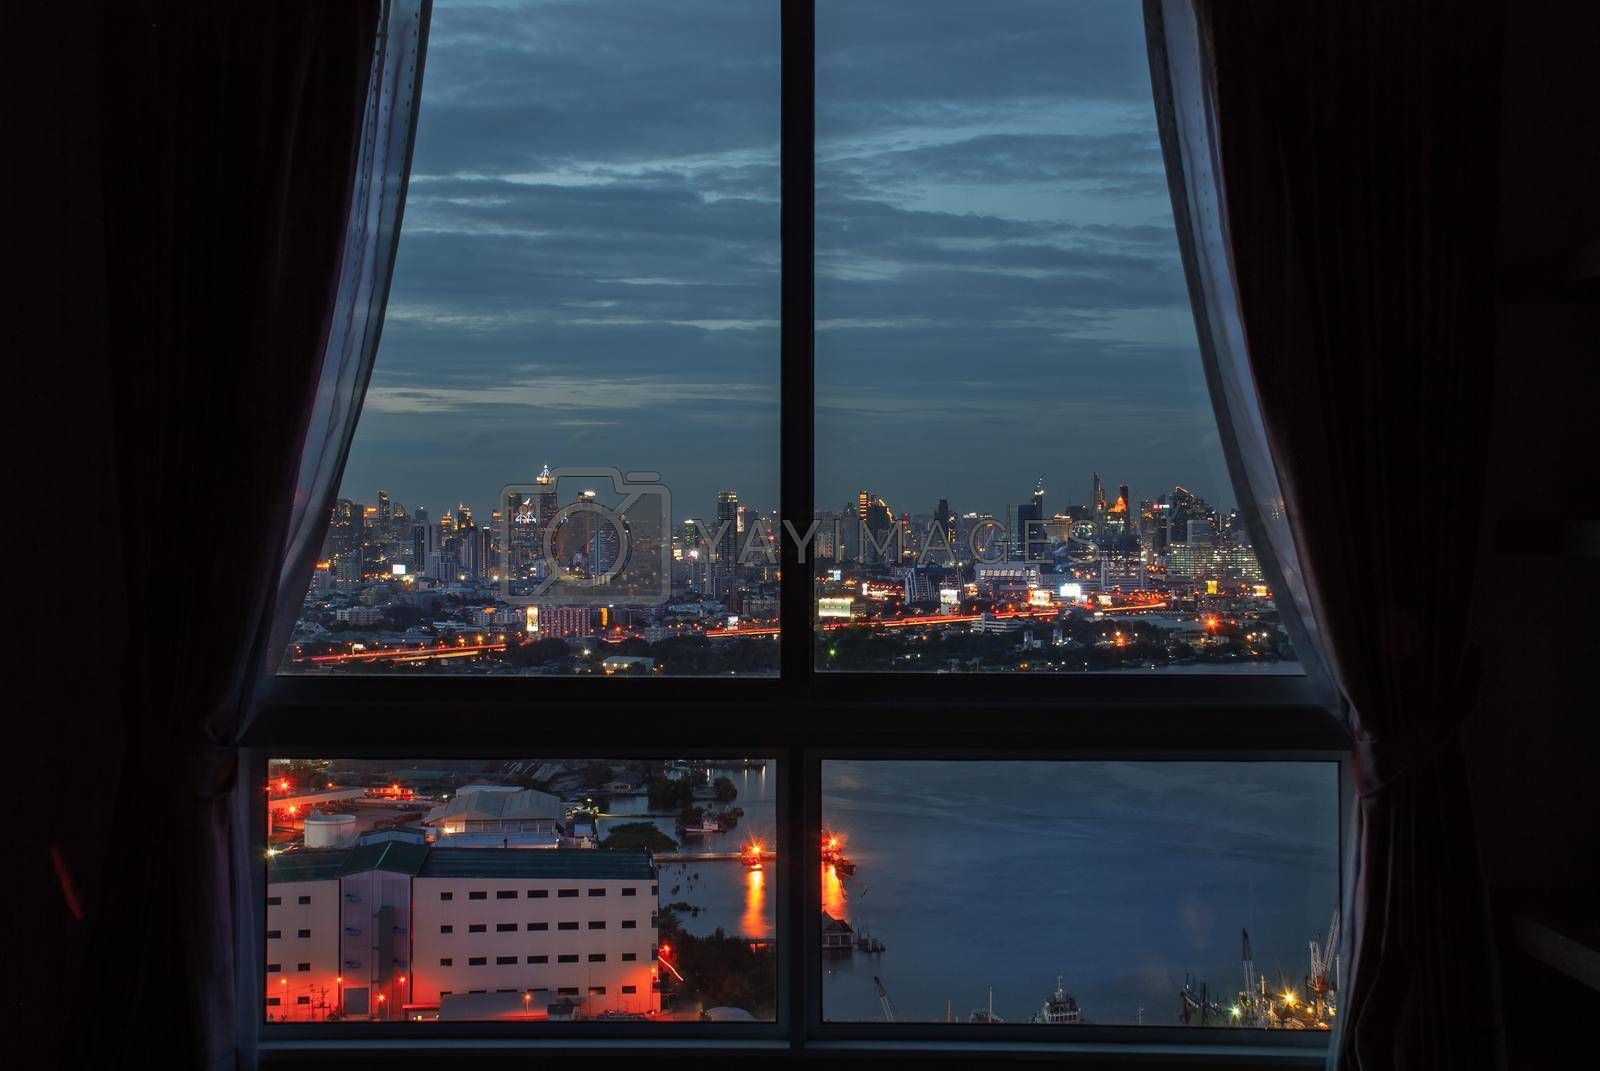 Bangkok, Thailand - 27 Aug, 2019 : The beautiful view of Bangkok, the beautiful skyscrapers along the Chao Phraya River during sunset seen through a bedroom window.